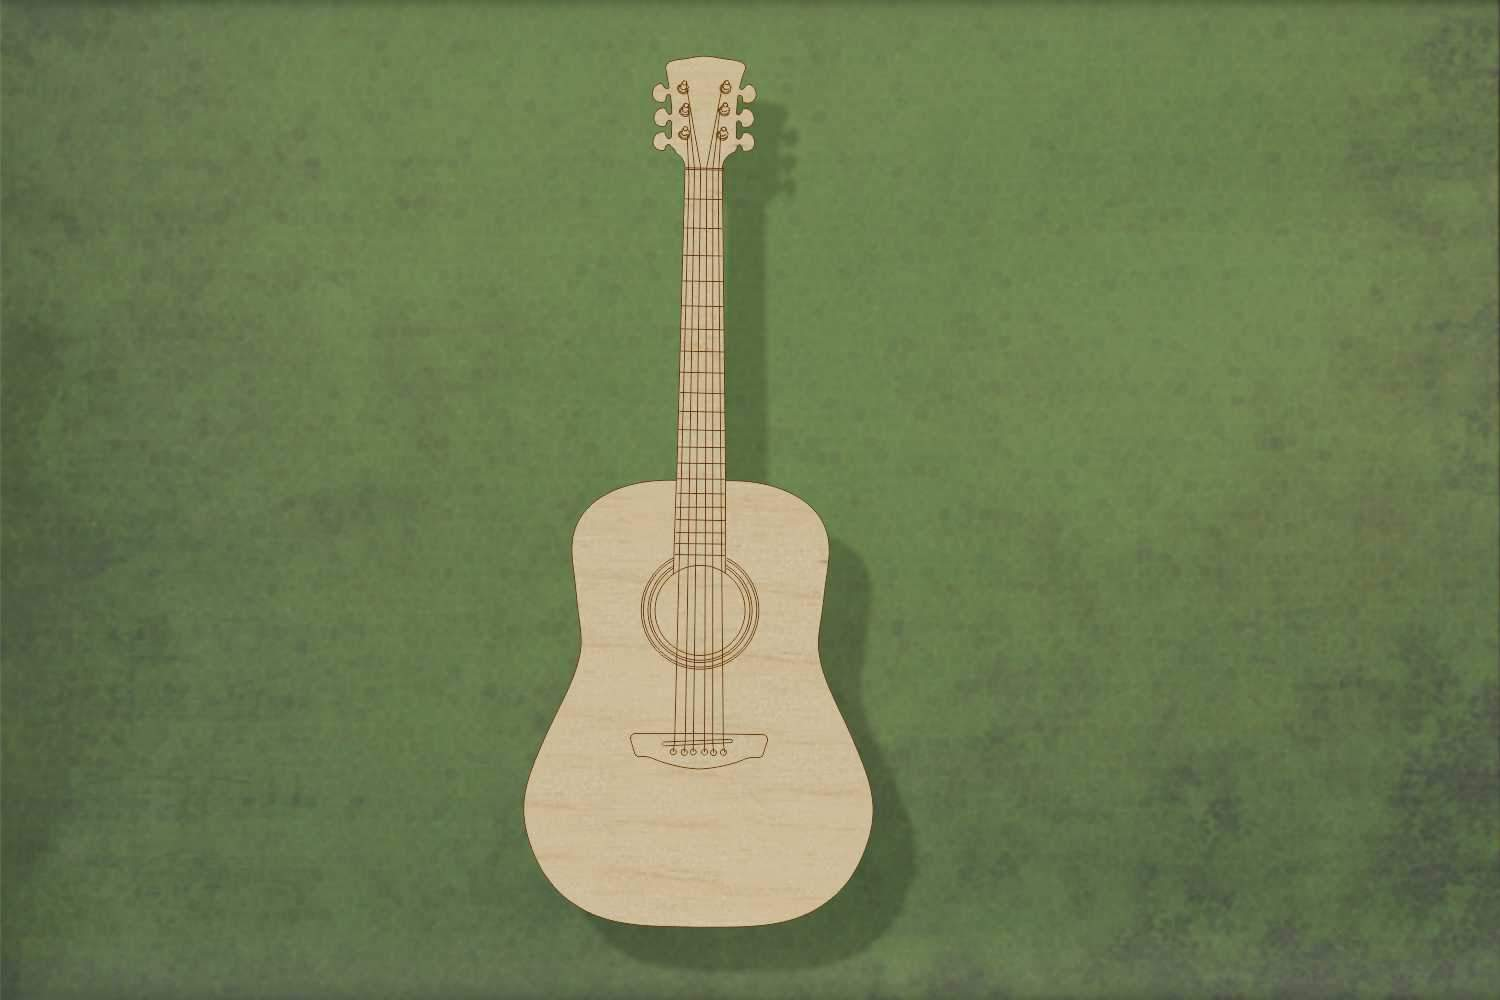 Laser cut, blank wooden acoustic guitar etched shape for craft